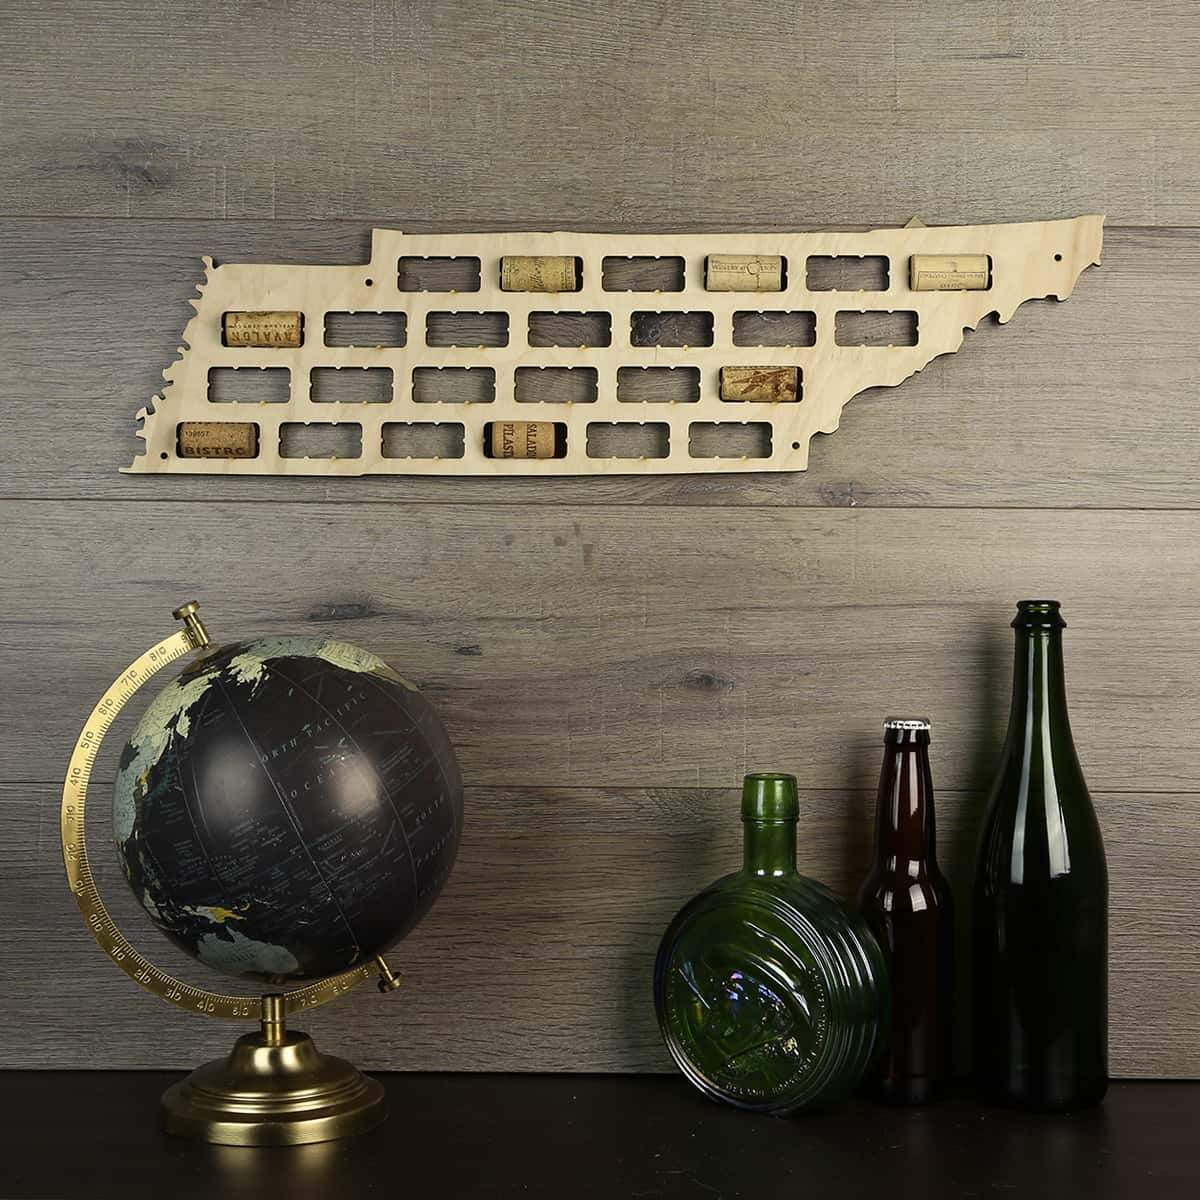 Torched Products Wine Cork Map Tennessee Wine Cork Map (778989830261)